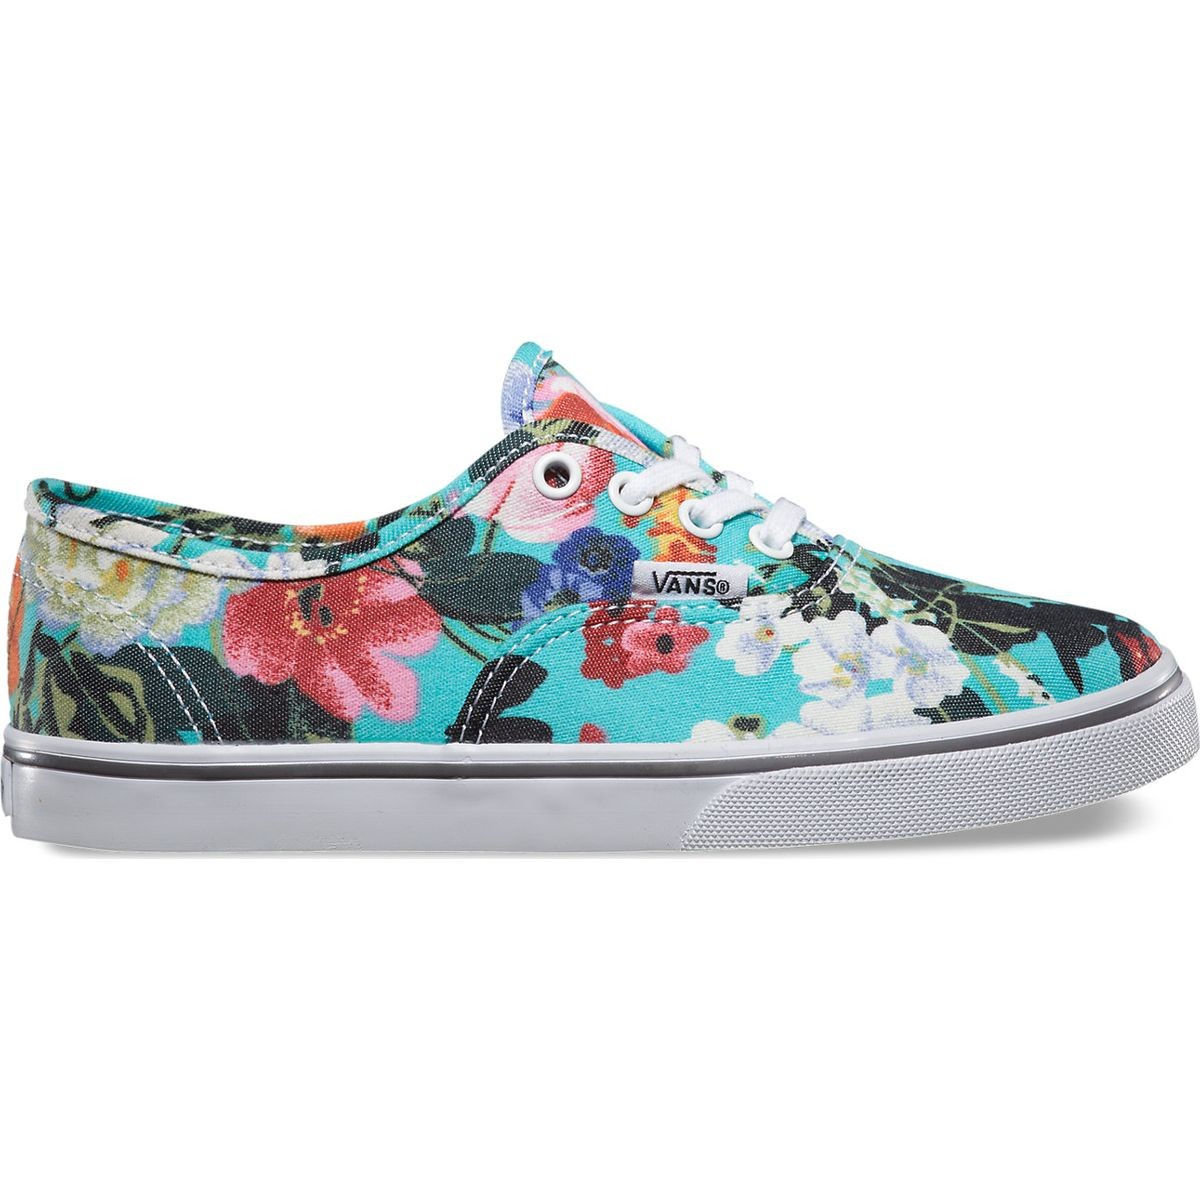 fa6175a9f1 Vans Authentic Lo Pro Floral Youth Shoes - Smoked Pearl True White - 4Y